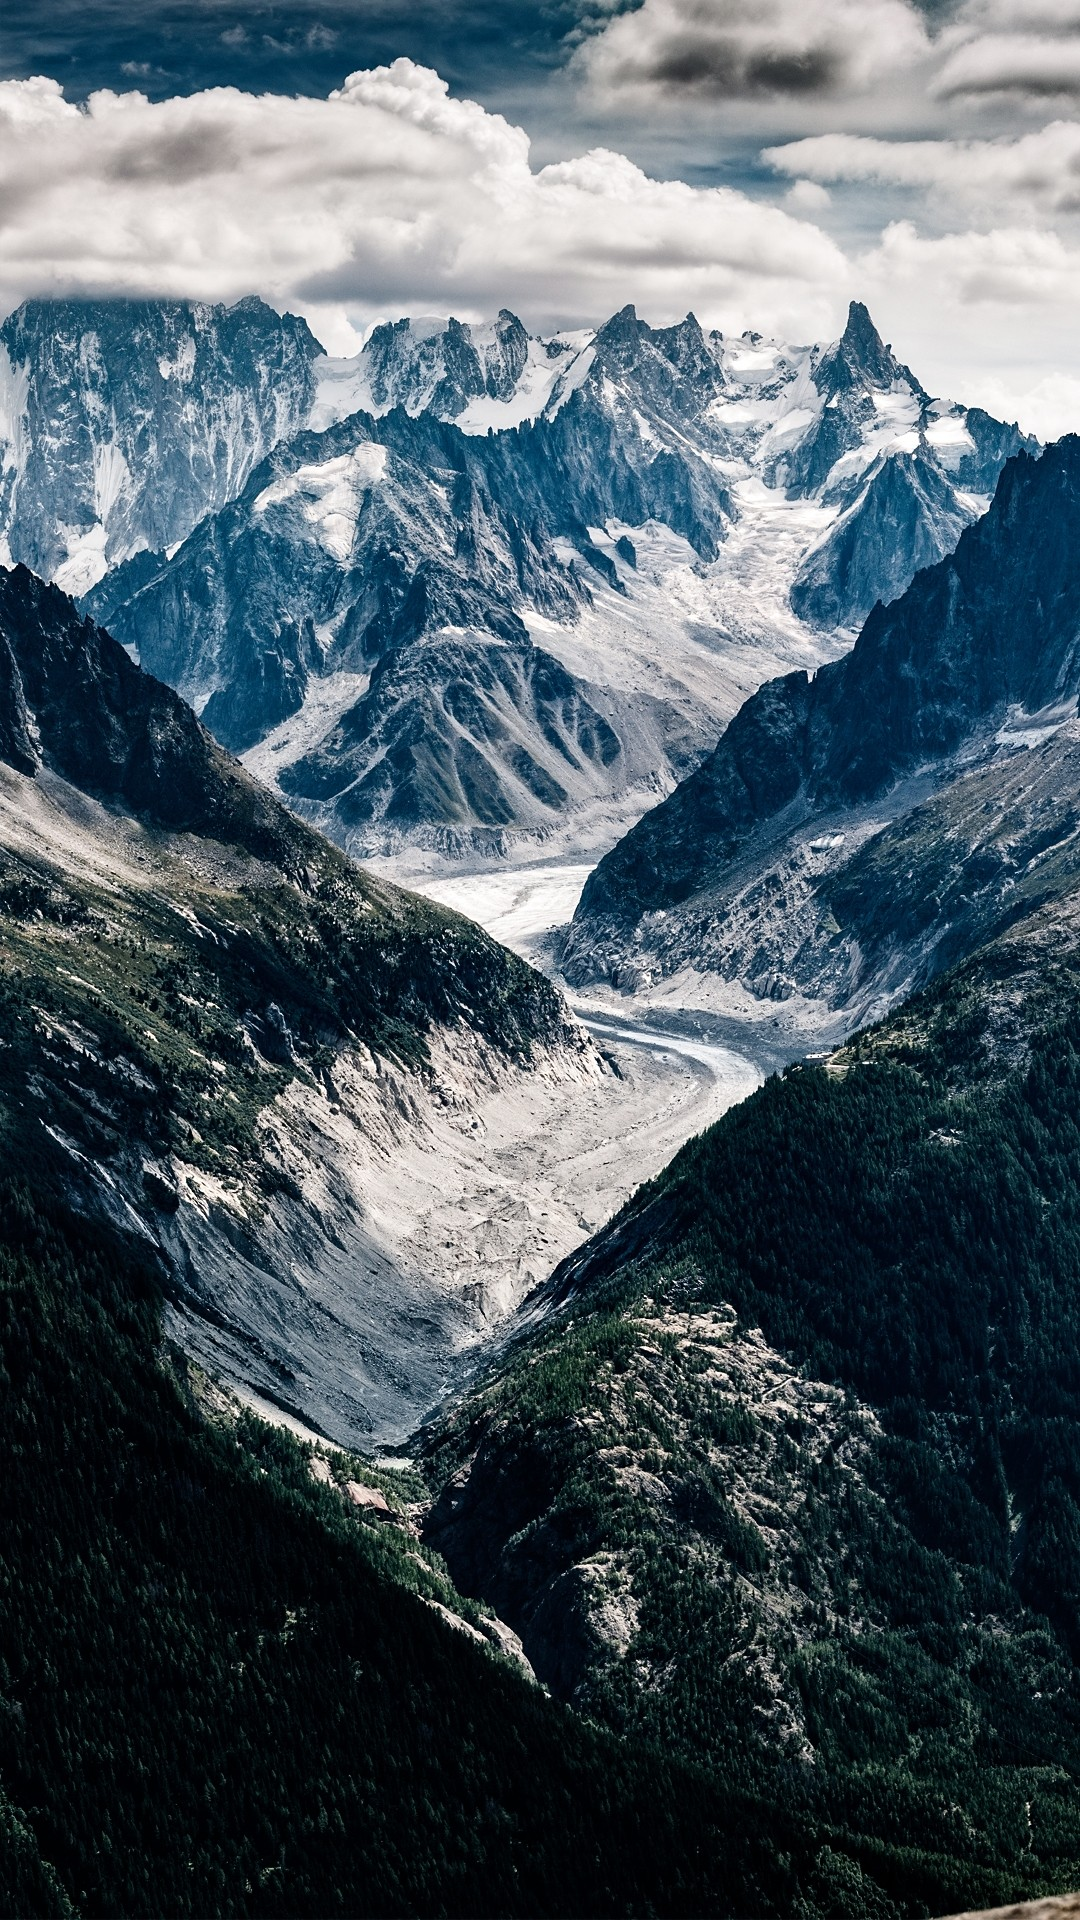 Mountain iphone wallpaper high quality